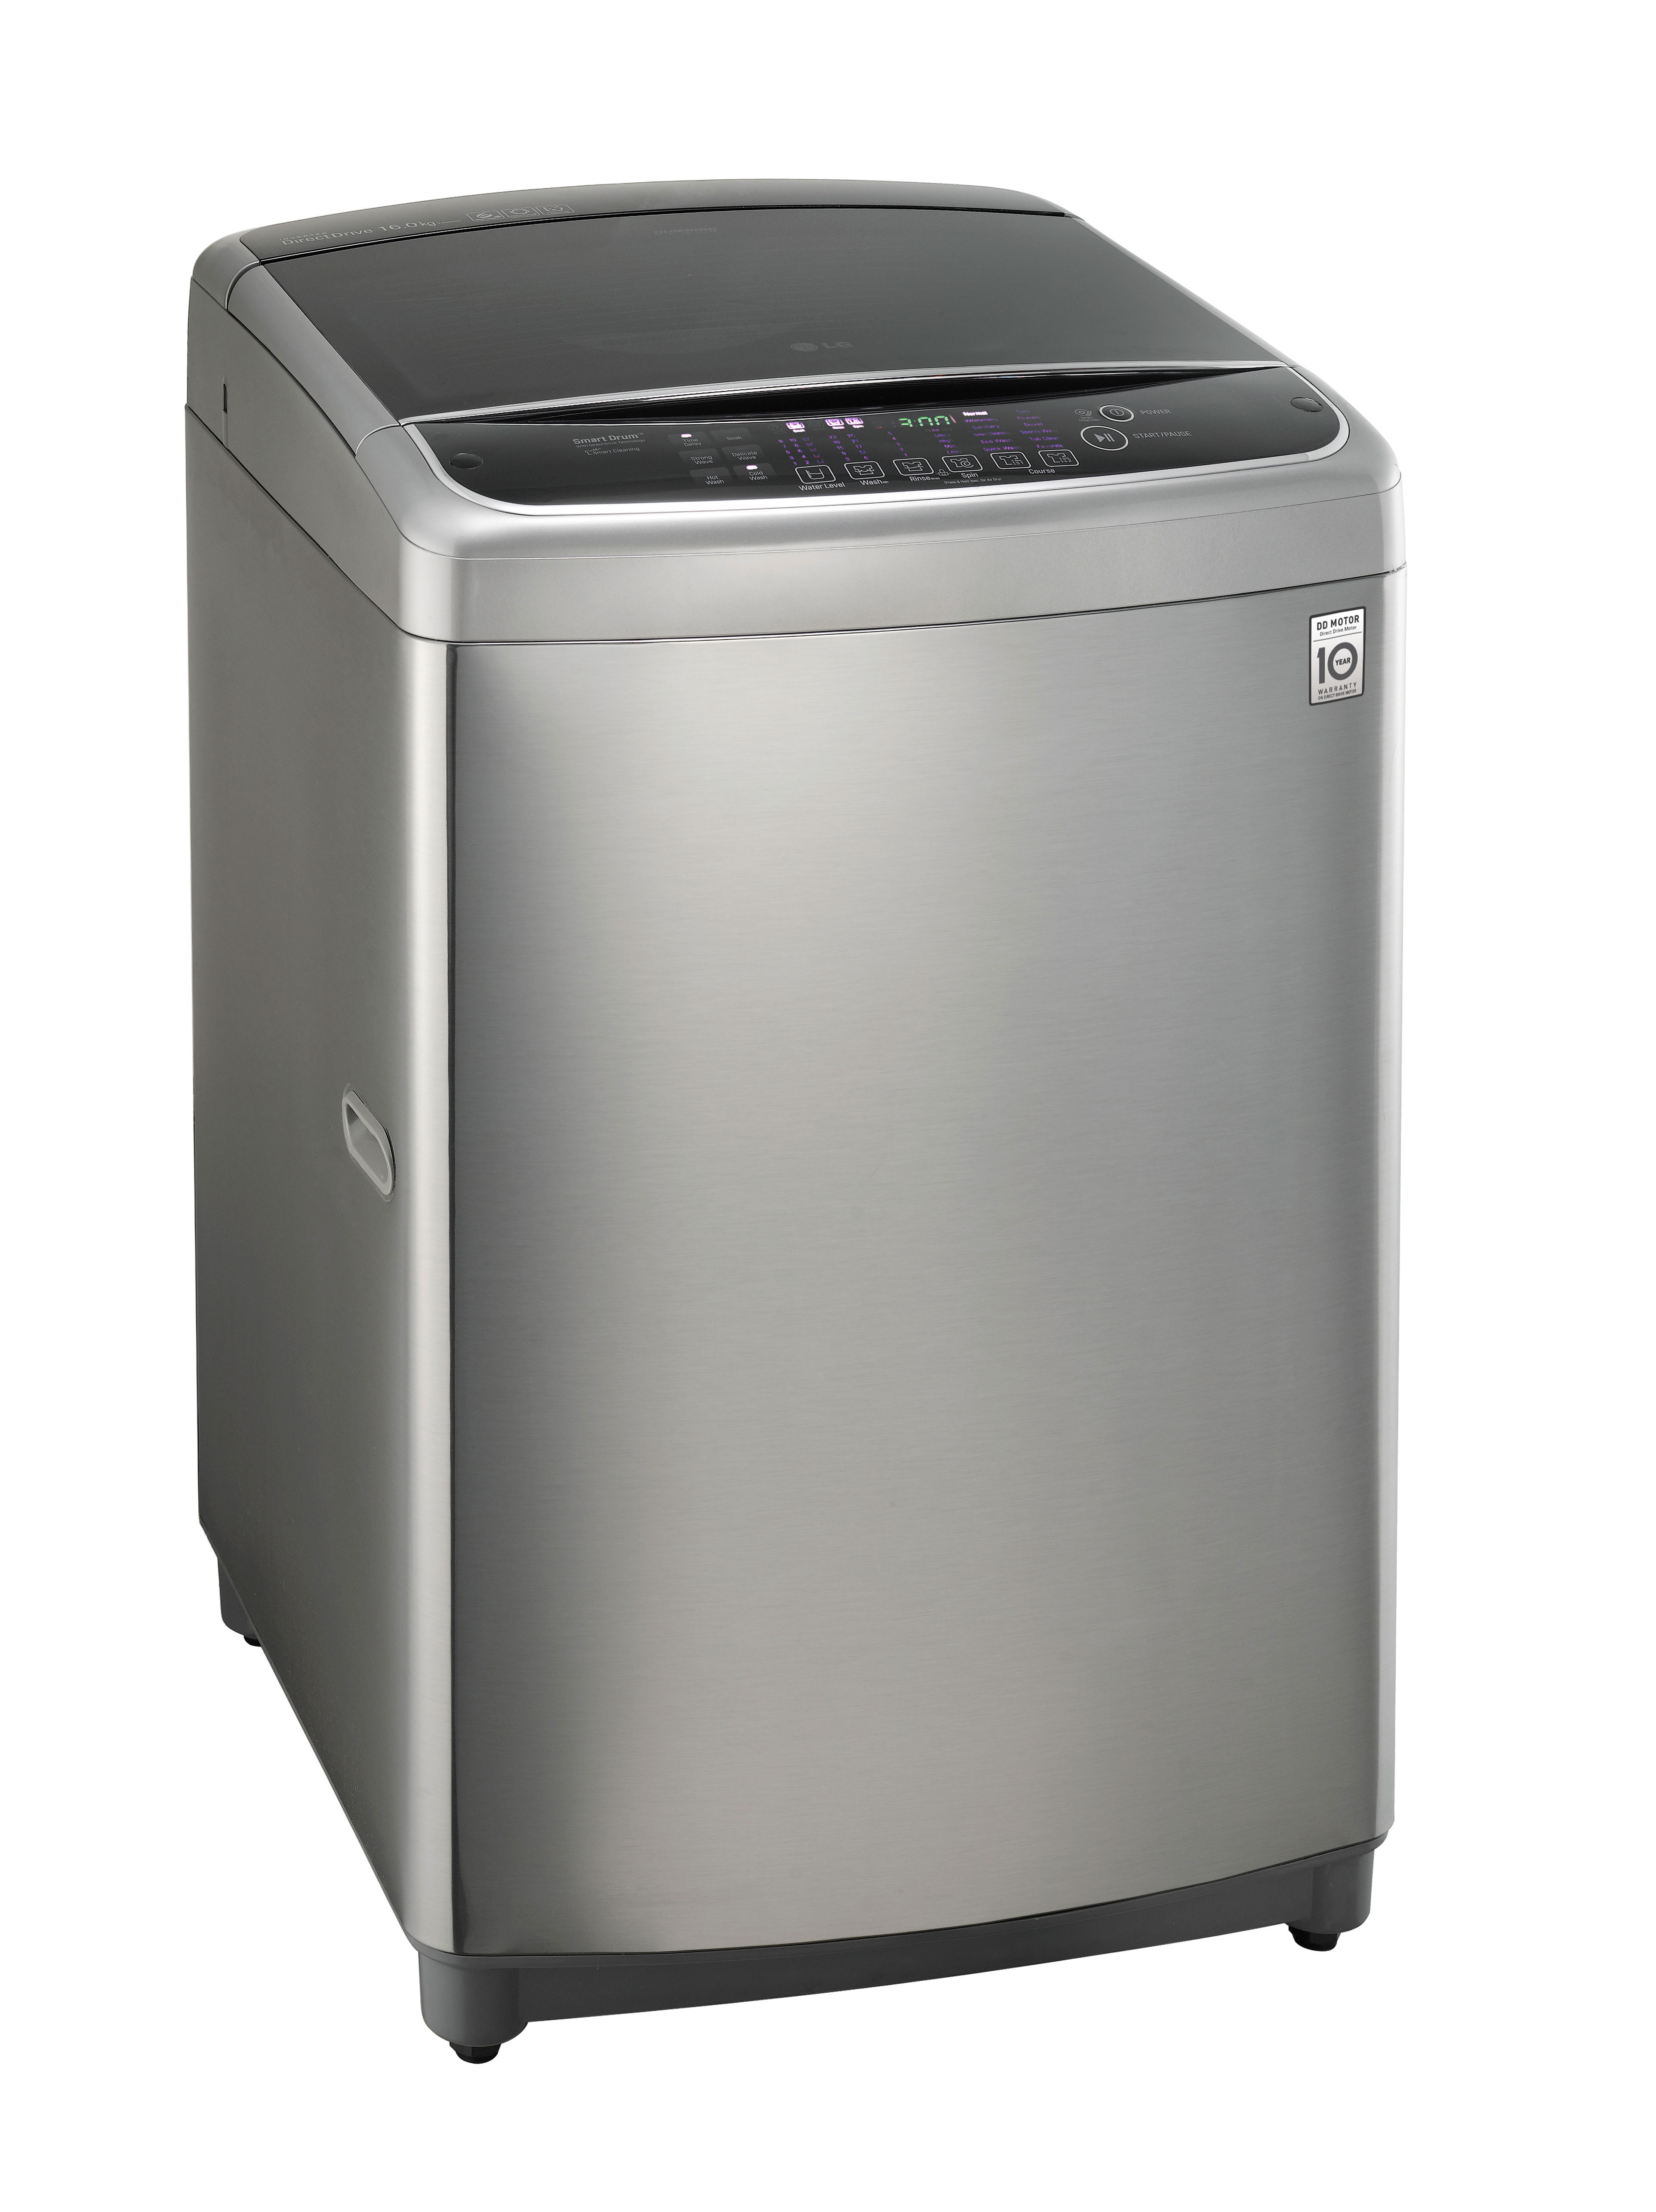 1. LG Top-load Washing Machine